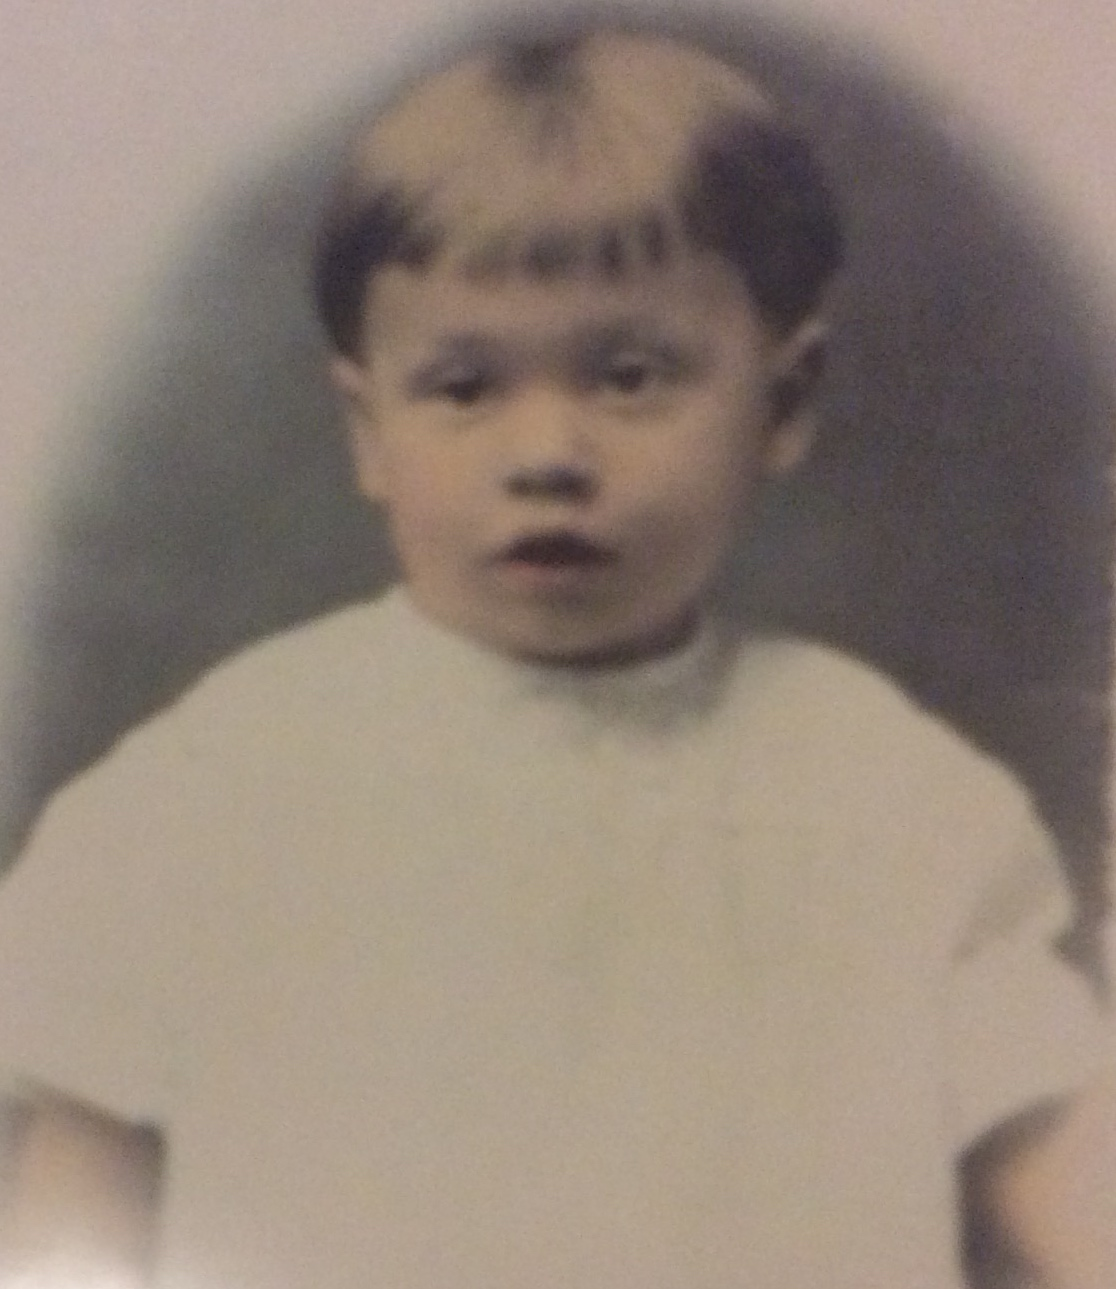 1919, 1 1/2 yrs old